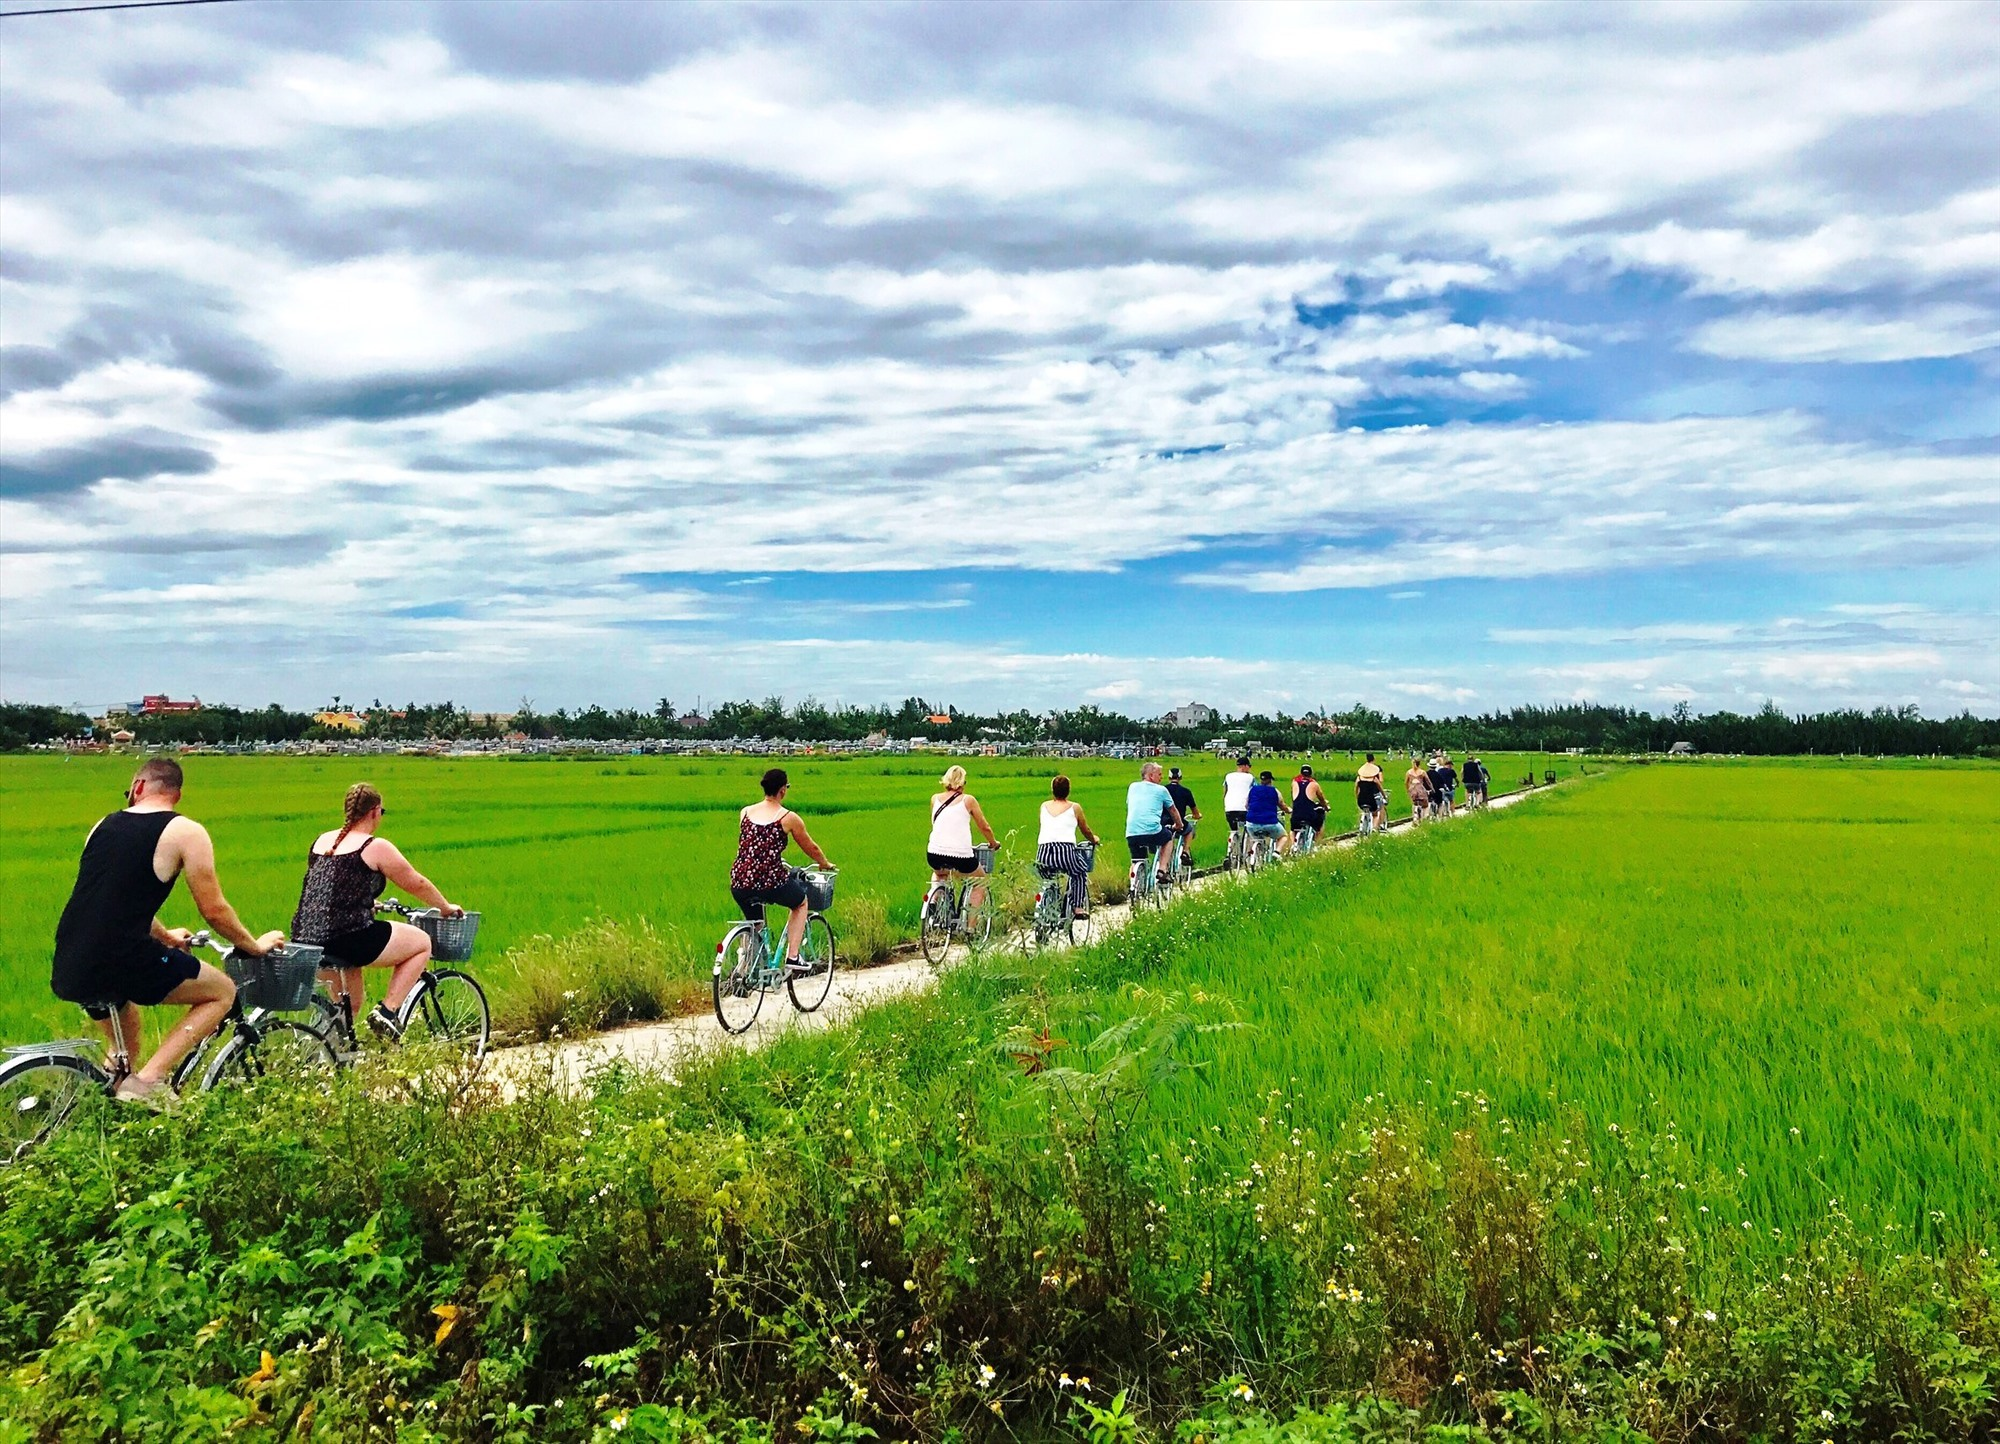 Foreign tourists explore the countryside in Hoi An by bike.